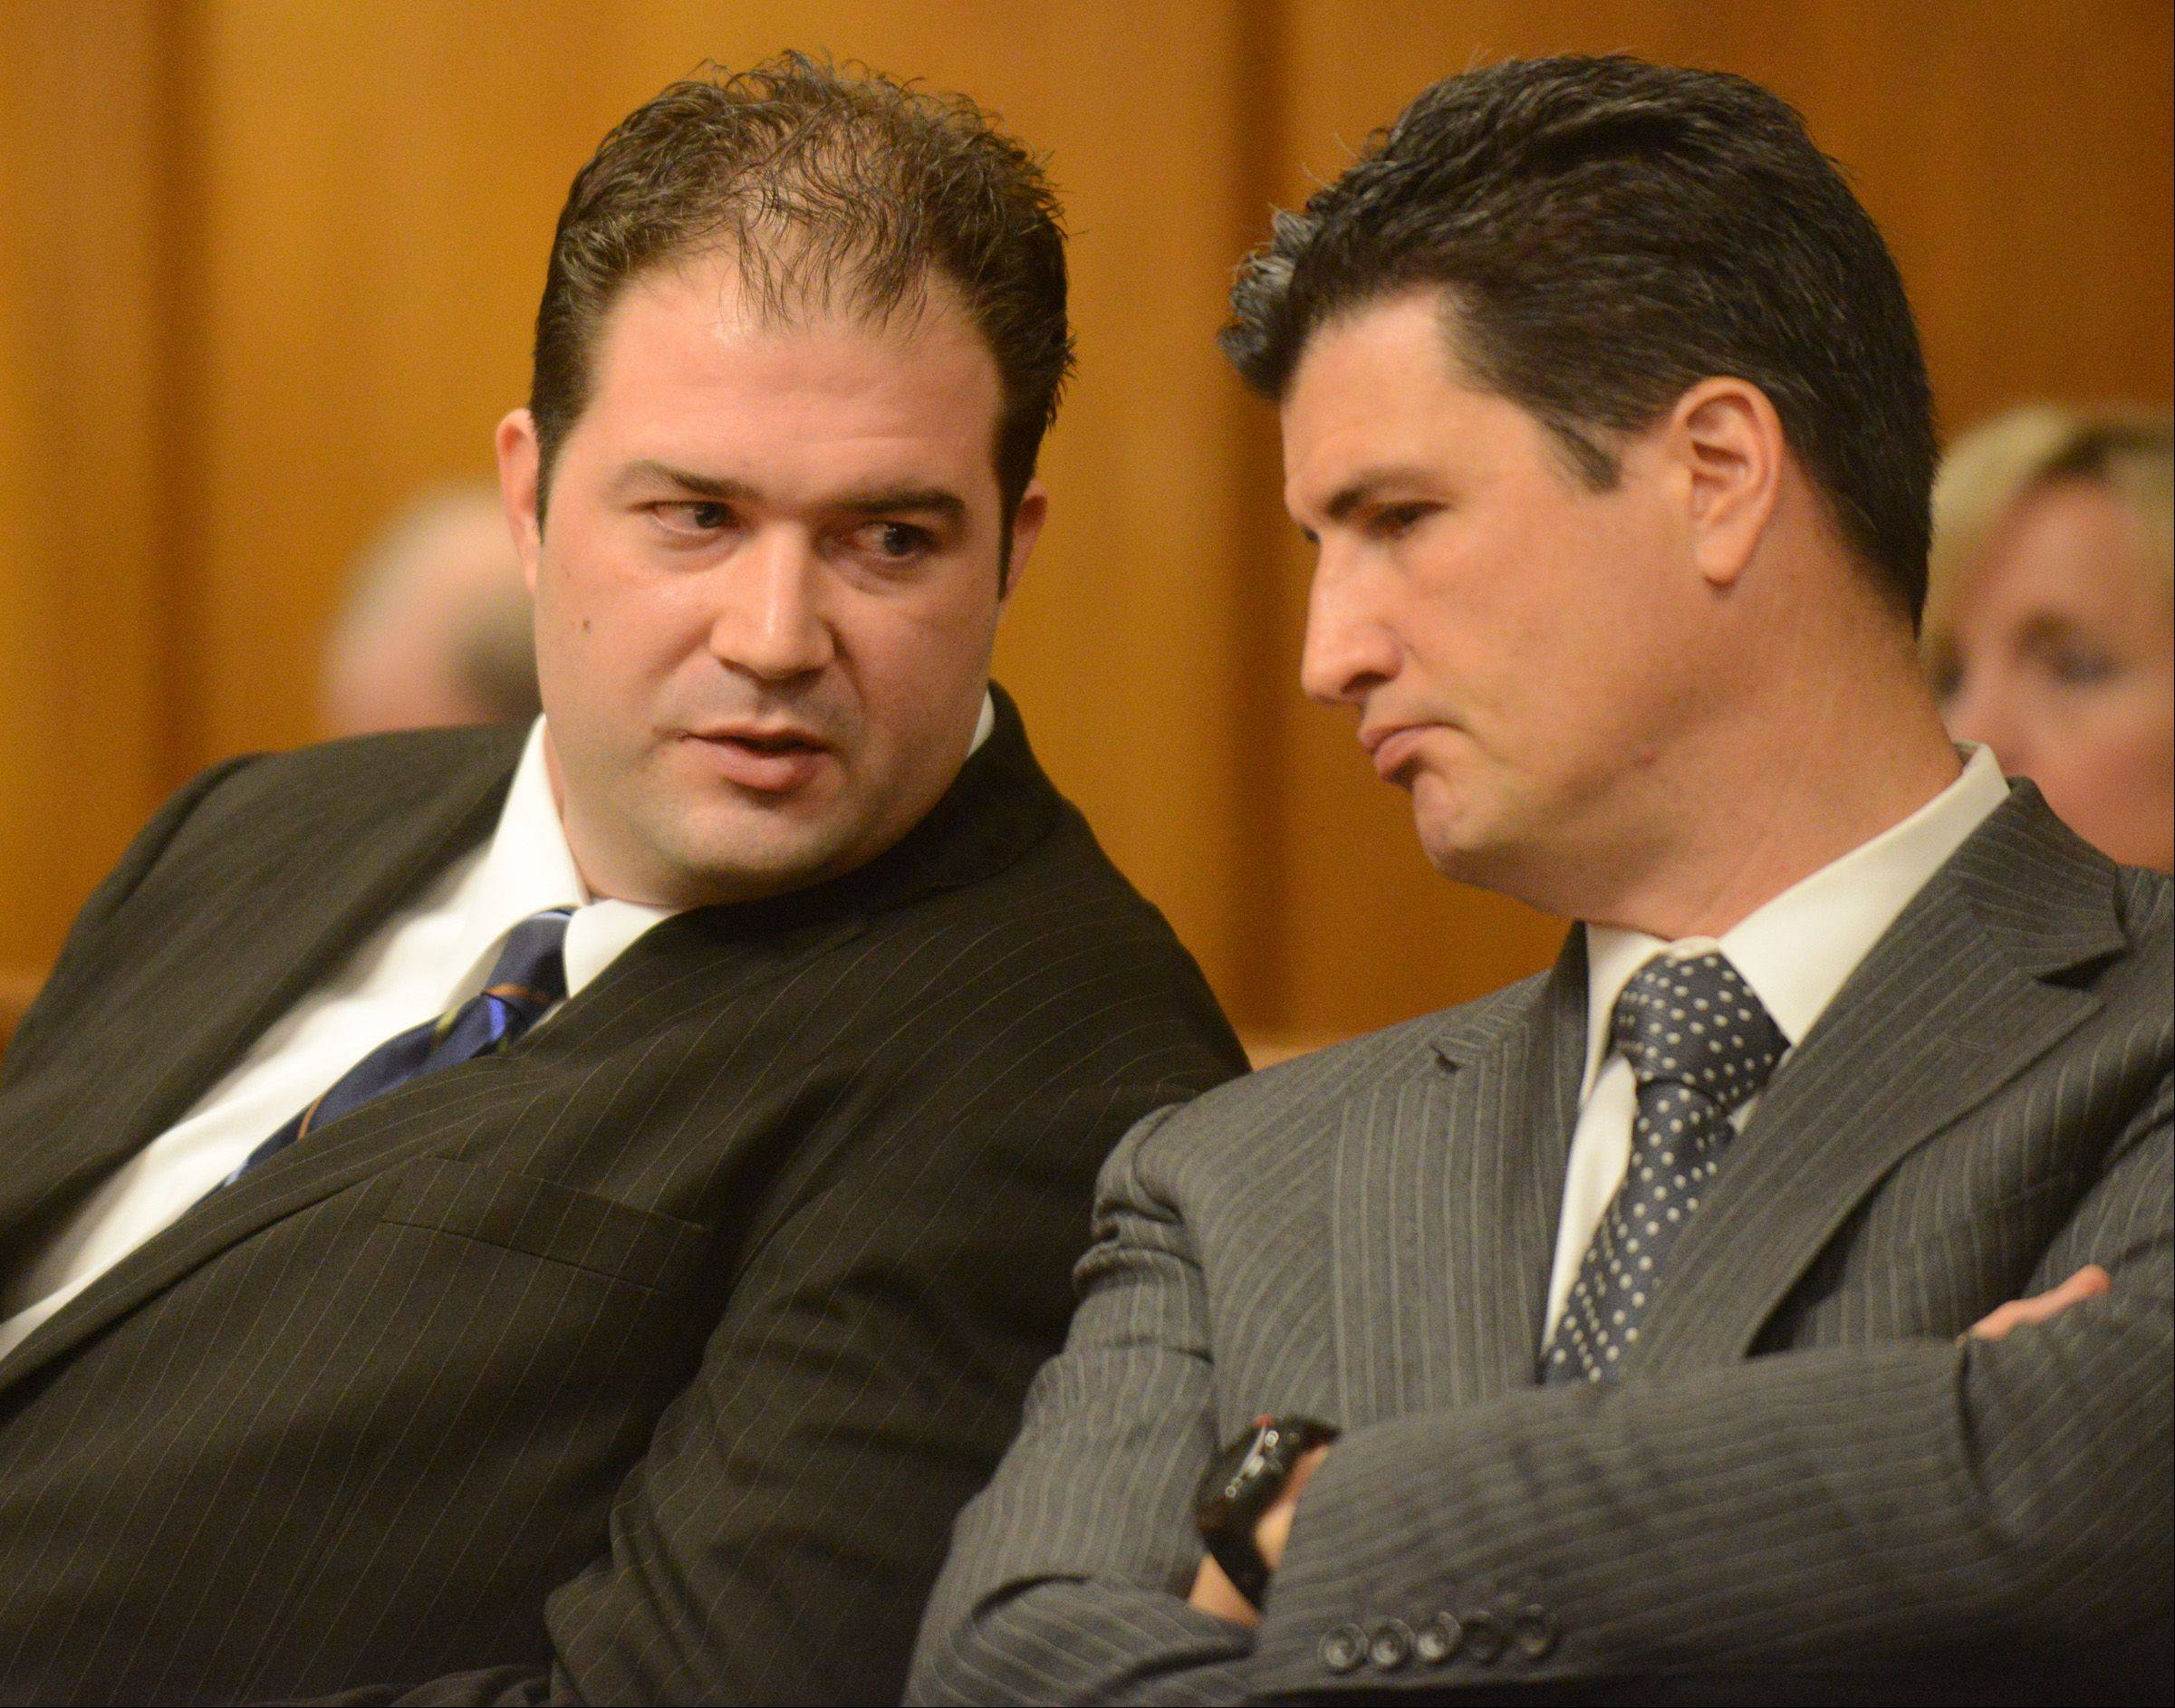 Matthew Padour, left, 31, of Libertyville speaks to his attorney, Frank Himel, during a sentencing hearing in front of Judge Raymond Collins at the Lake County Courthouse for attacking a Metra conductor in April 2012.